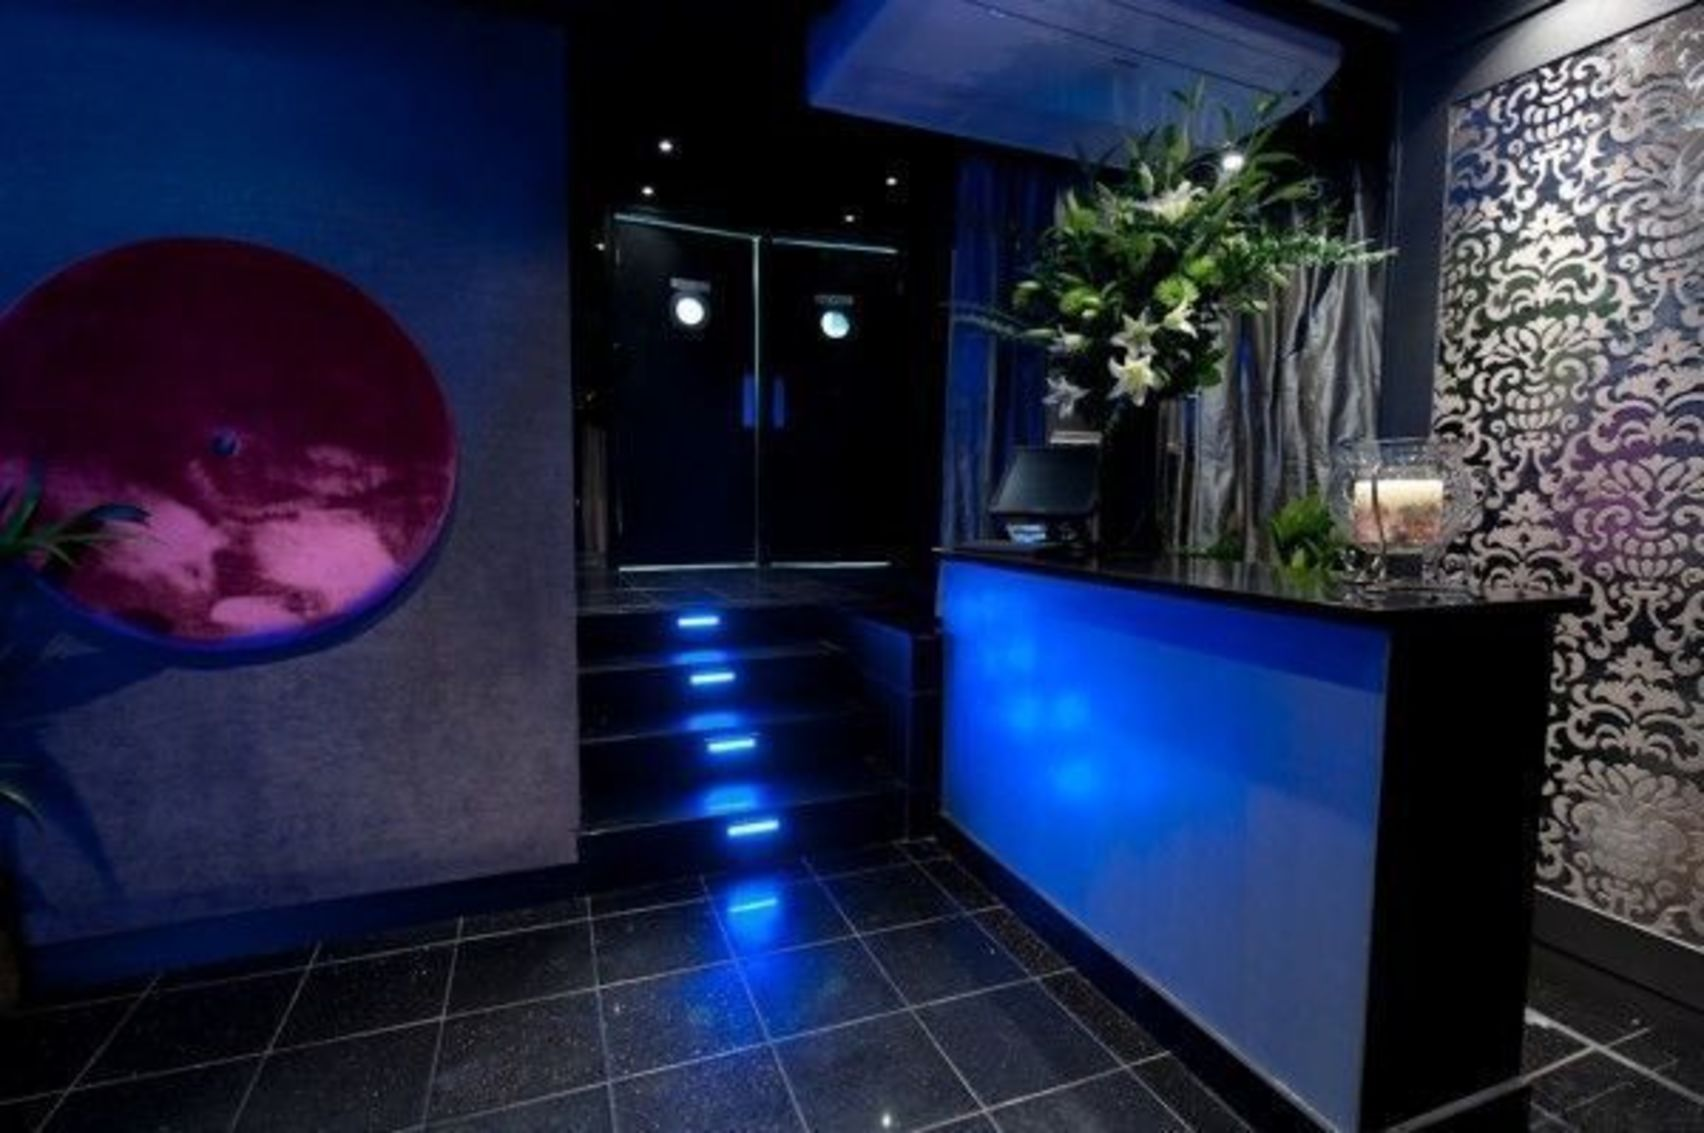 Day Hire, Exclusive Underground Bar, Privee Knightsbridge